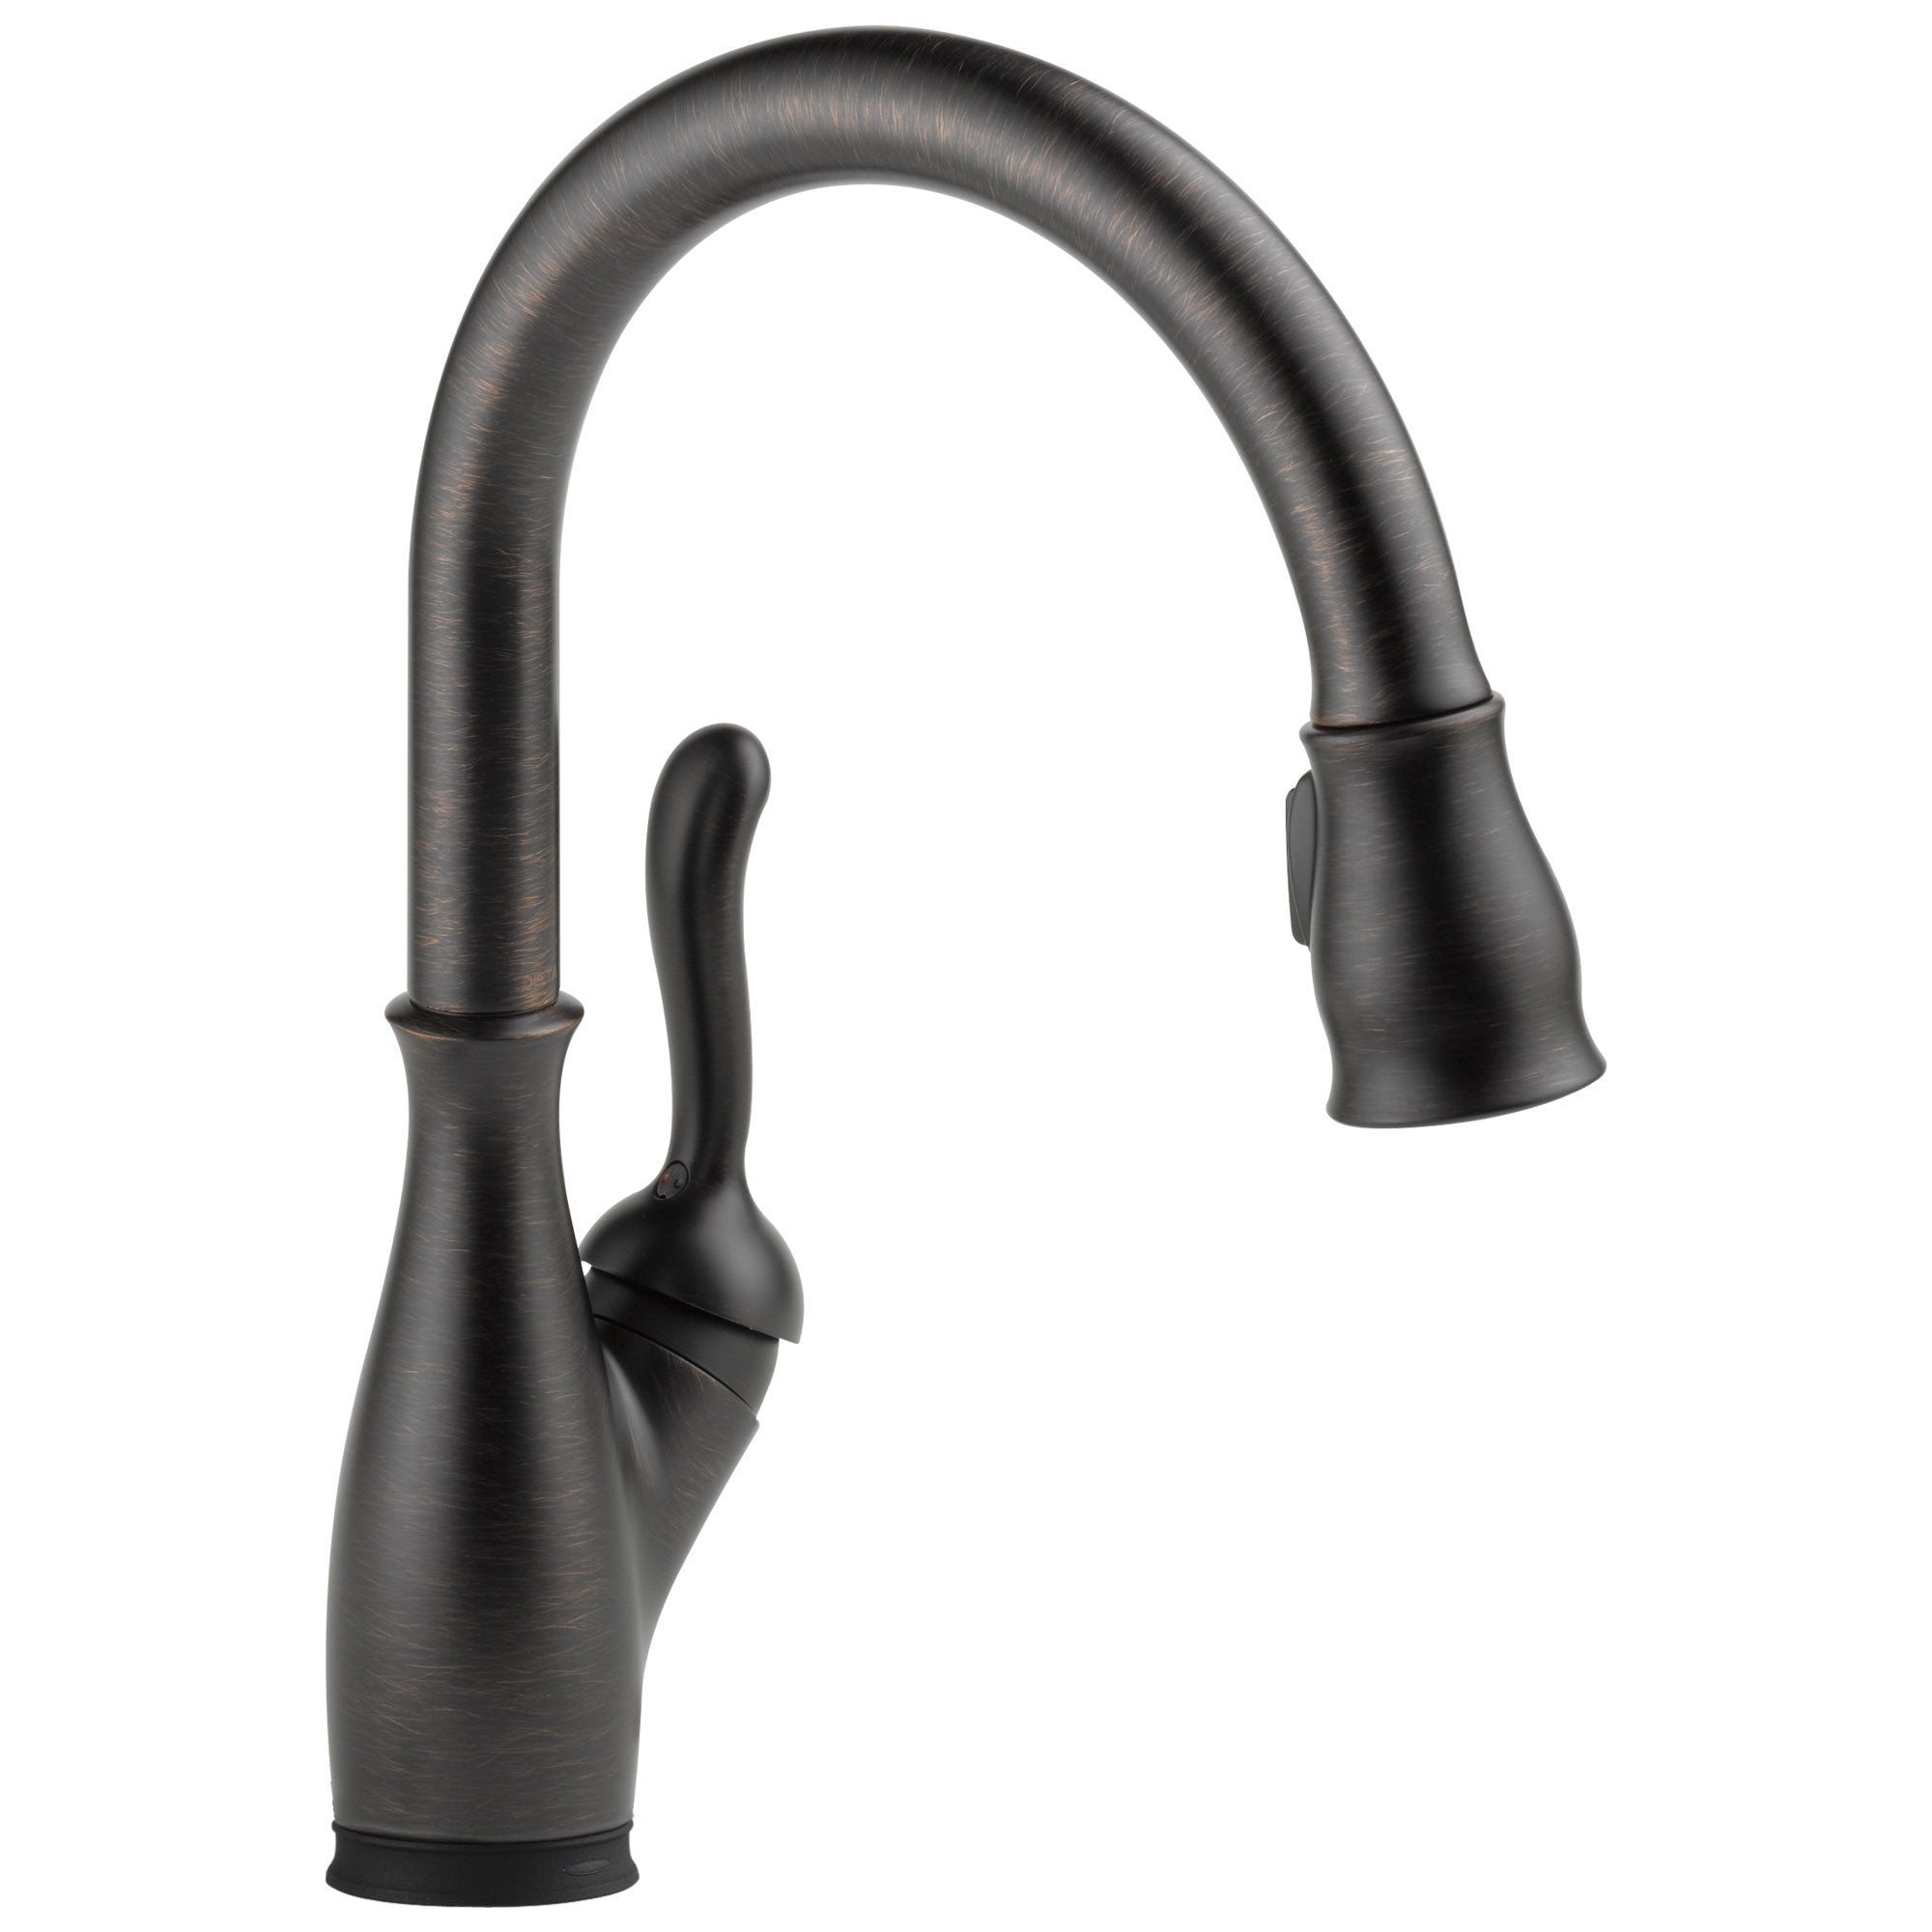 Delta Leland Collection Venetian Bronze Finish Single Lever Handle Electronic Pull-Down Kitchen Sink Faucet with Touch2O Technology 731028